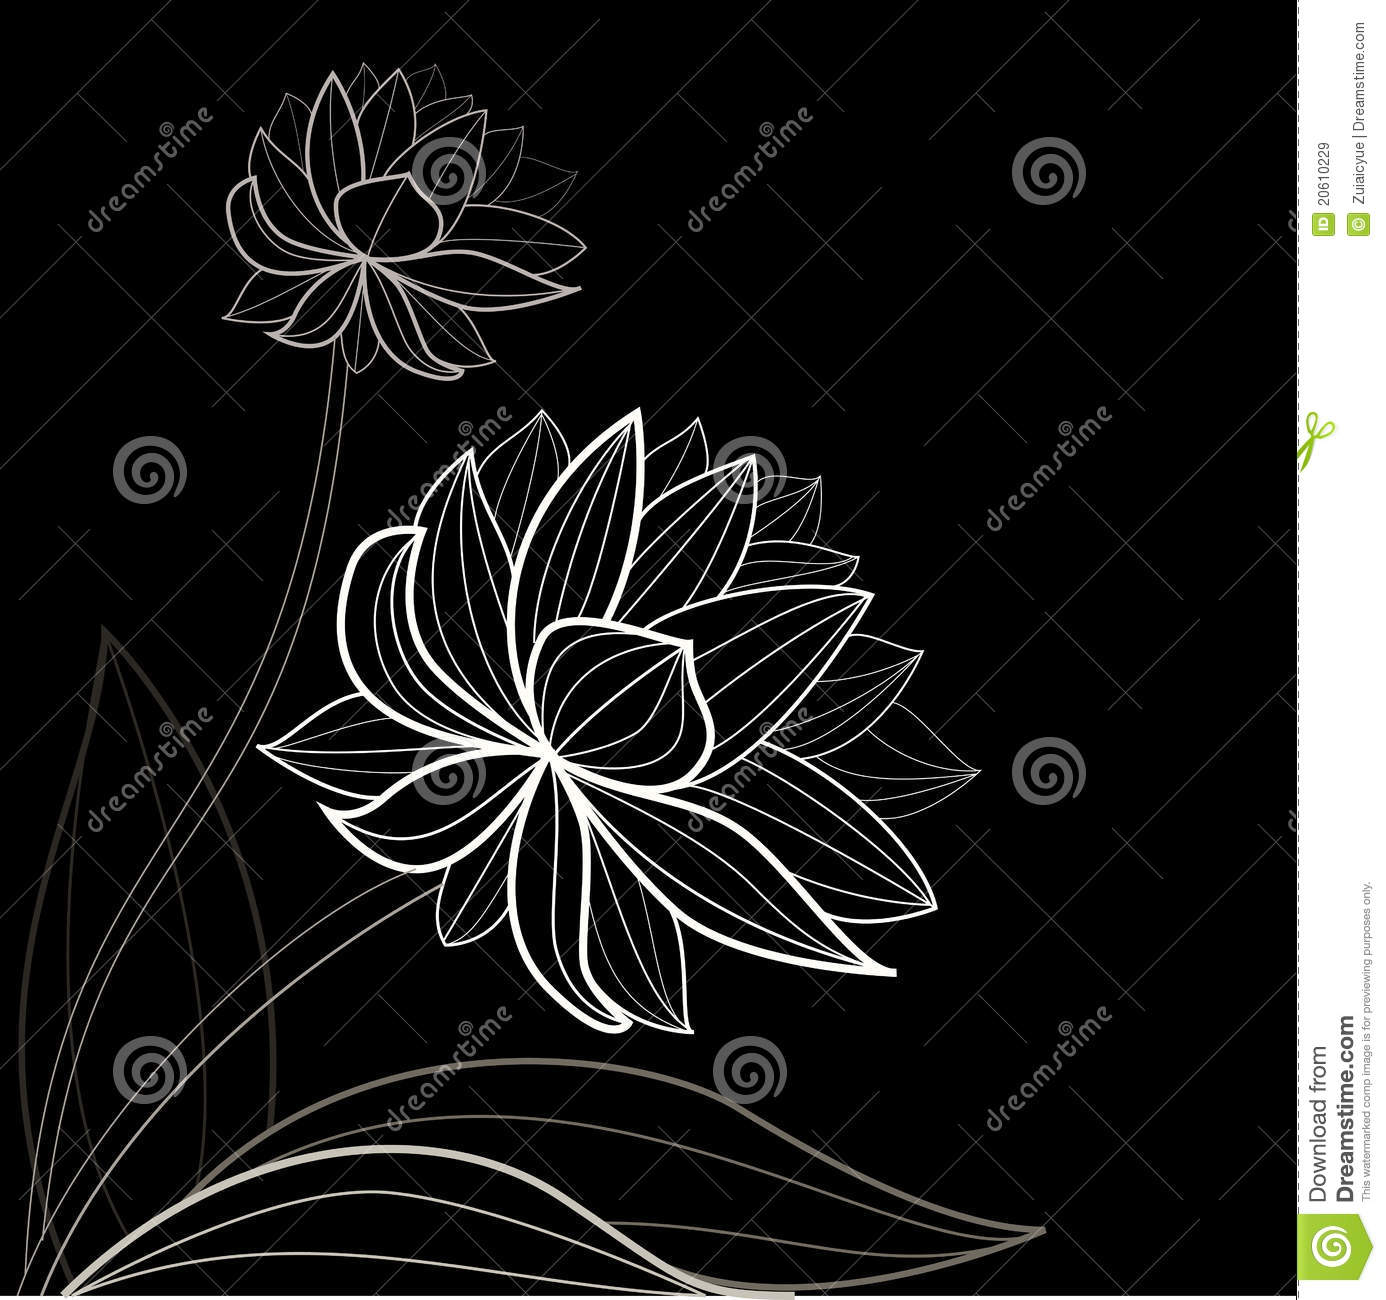 Black Flower And Bud Pattern Royalty Free Stock Photos: Black Flower Pattern Royalty Free Stock Images